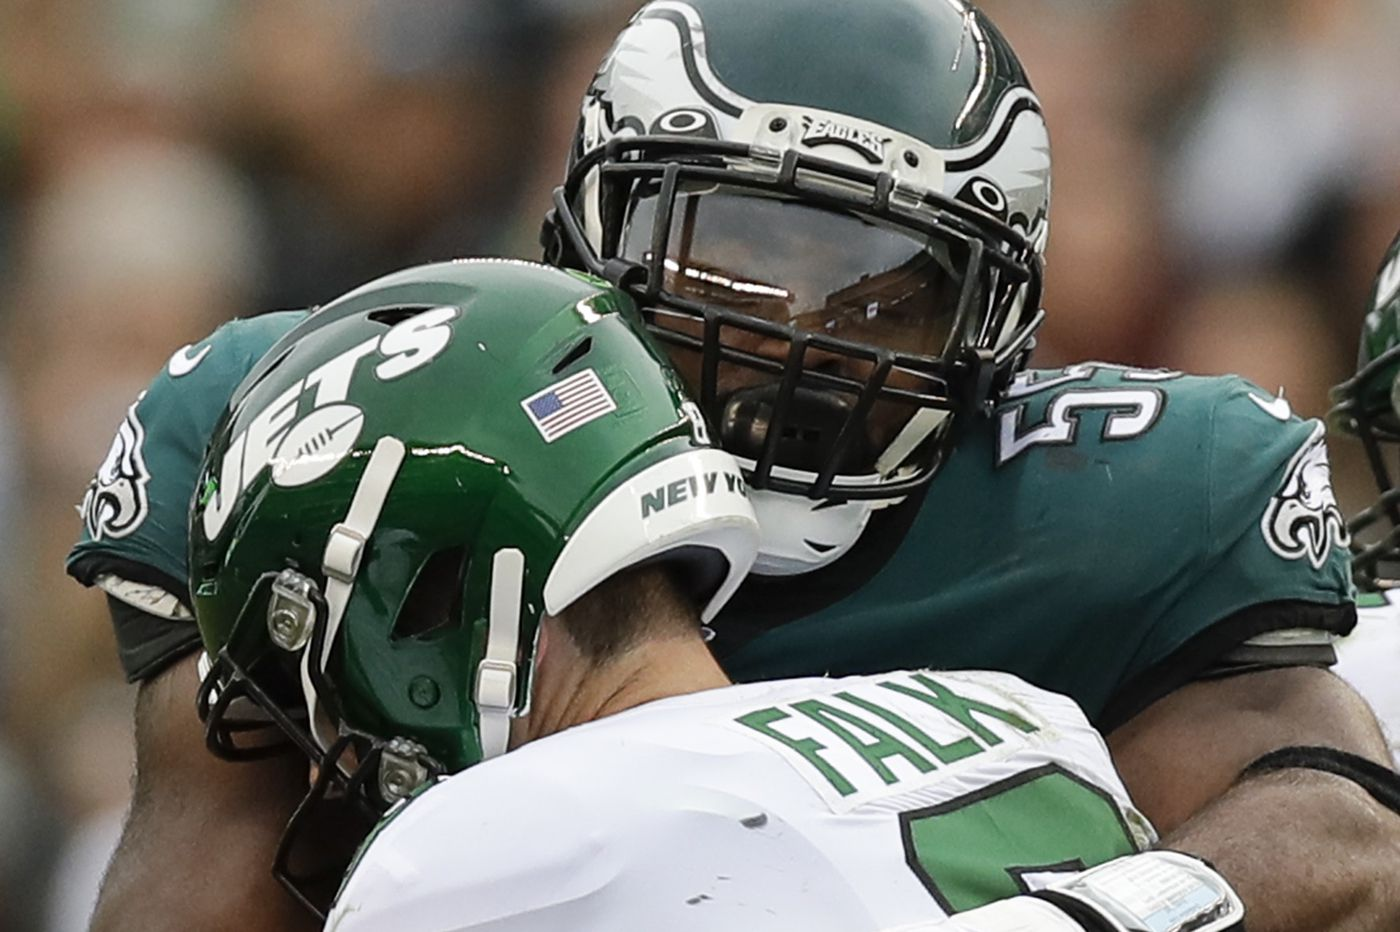 Eagles defense dominates Jets with 10 sacks and 2 touchdowns | Early Birds